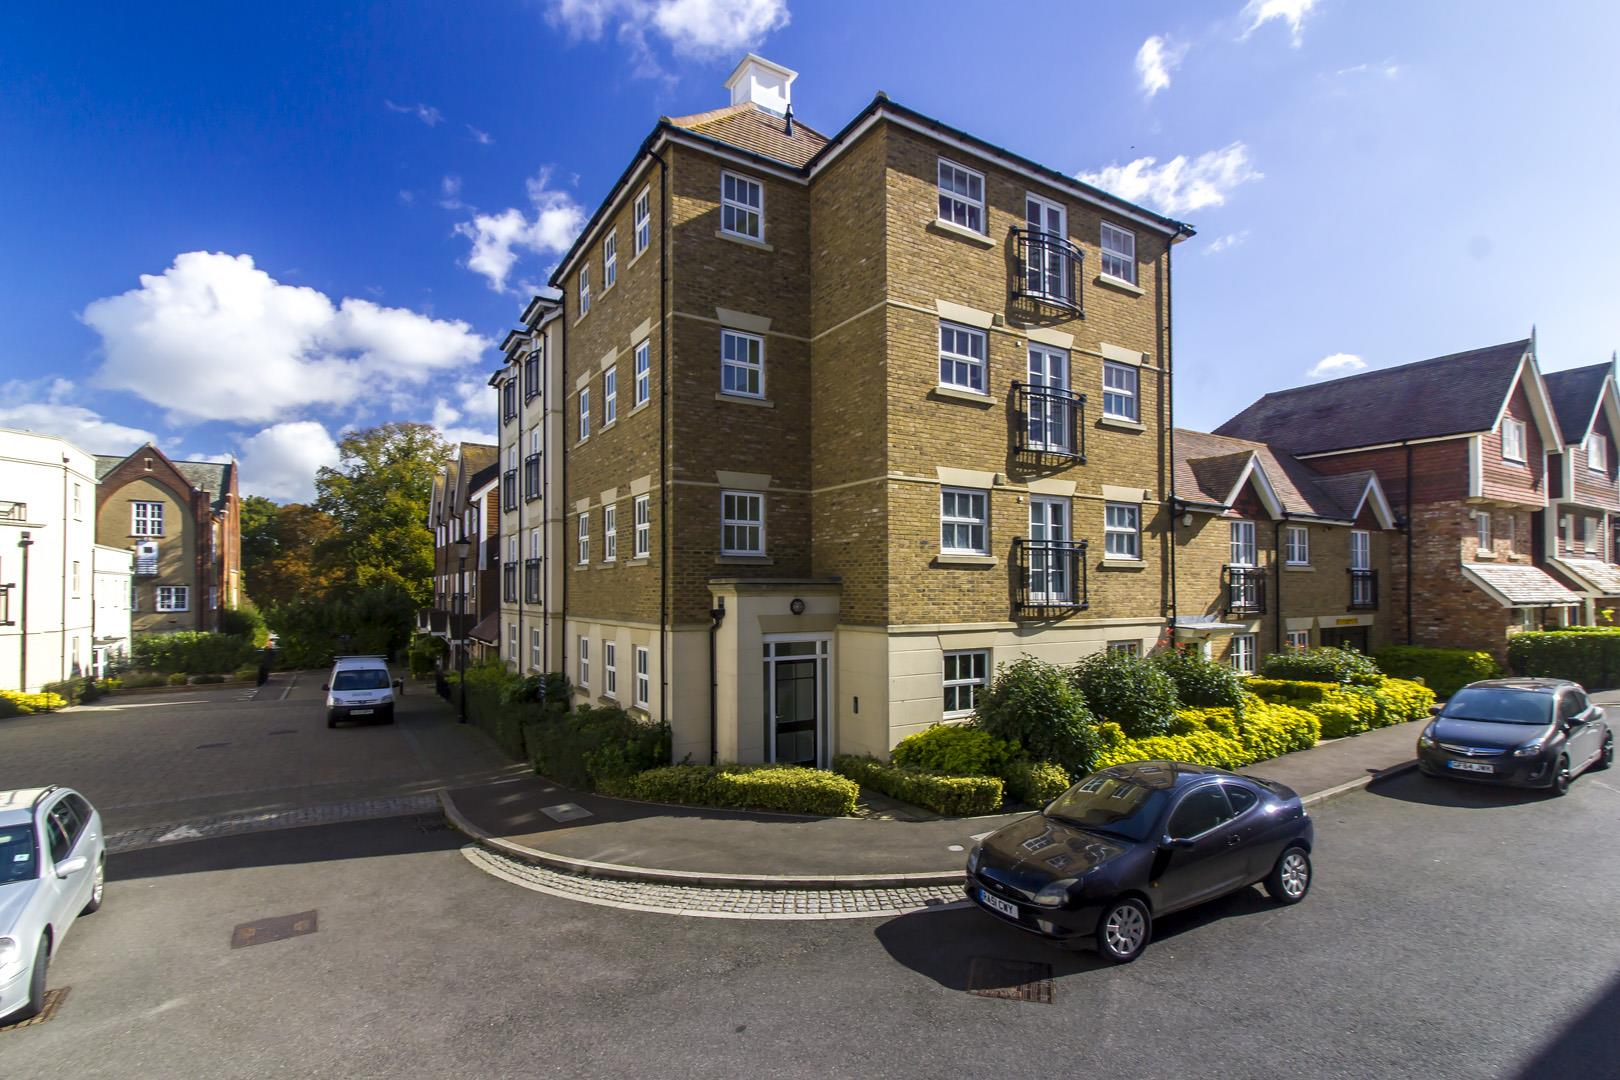 2 Bedrooms Flat for sale in St. Augustines Park, Westgate-On-Sea